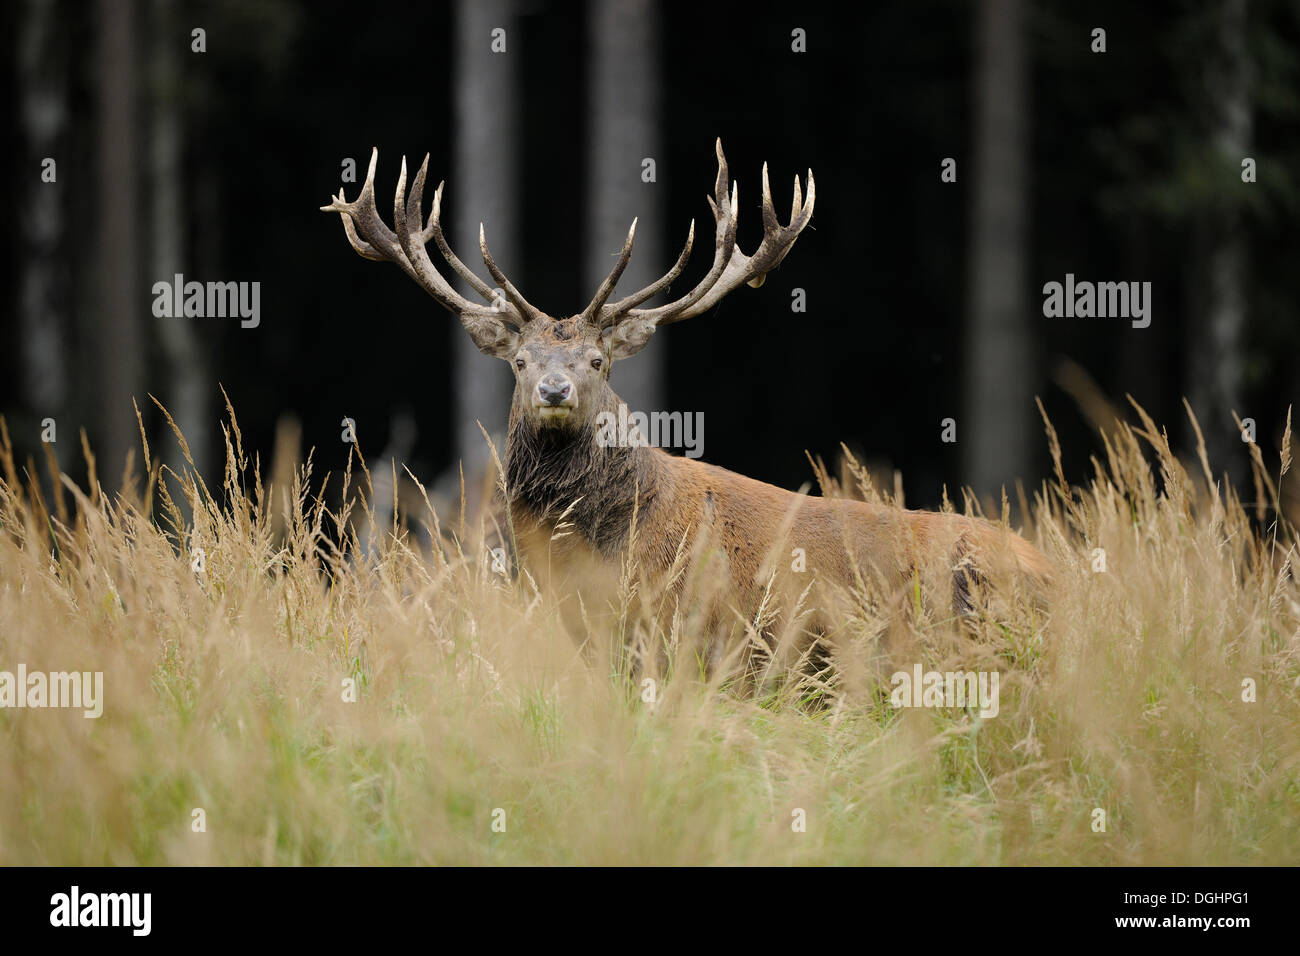 Red Deer (Cervus elaphus), Stag, captive, Basse-Saxe, Allemagne Photo Stock